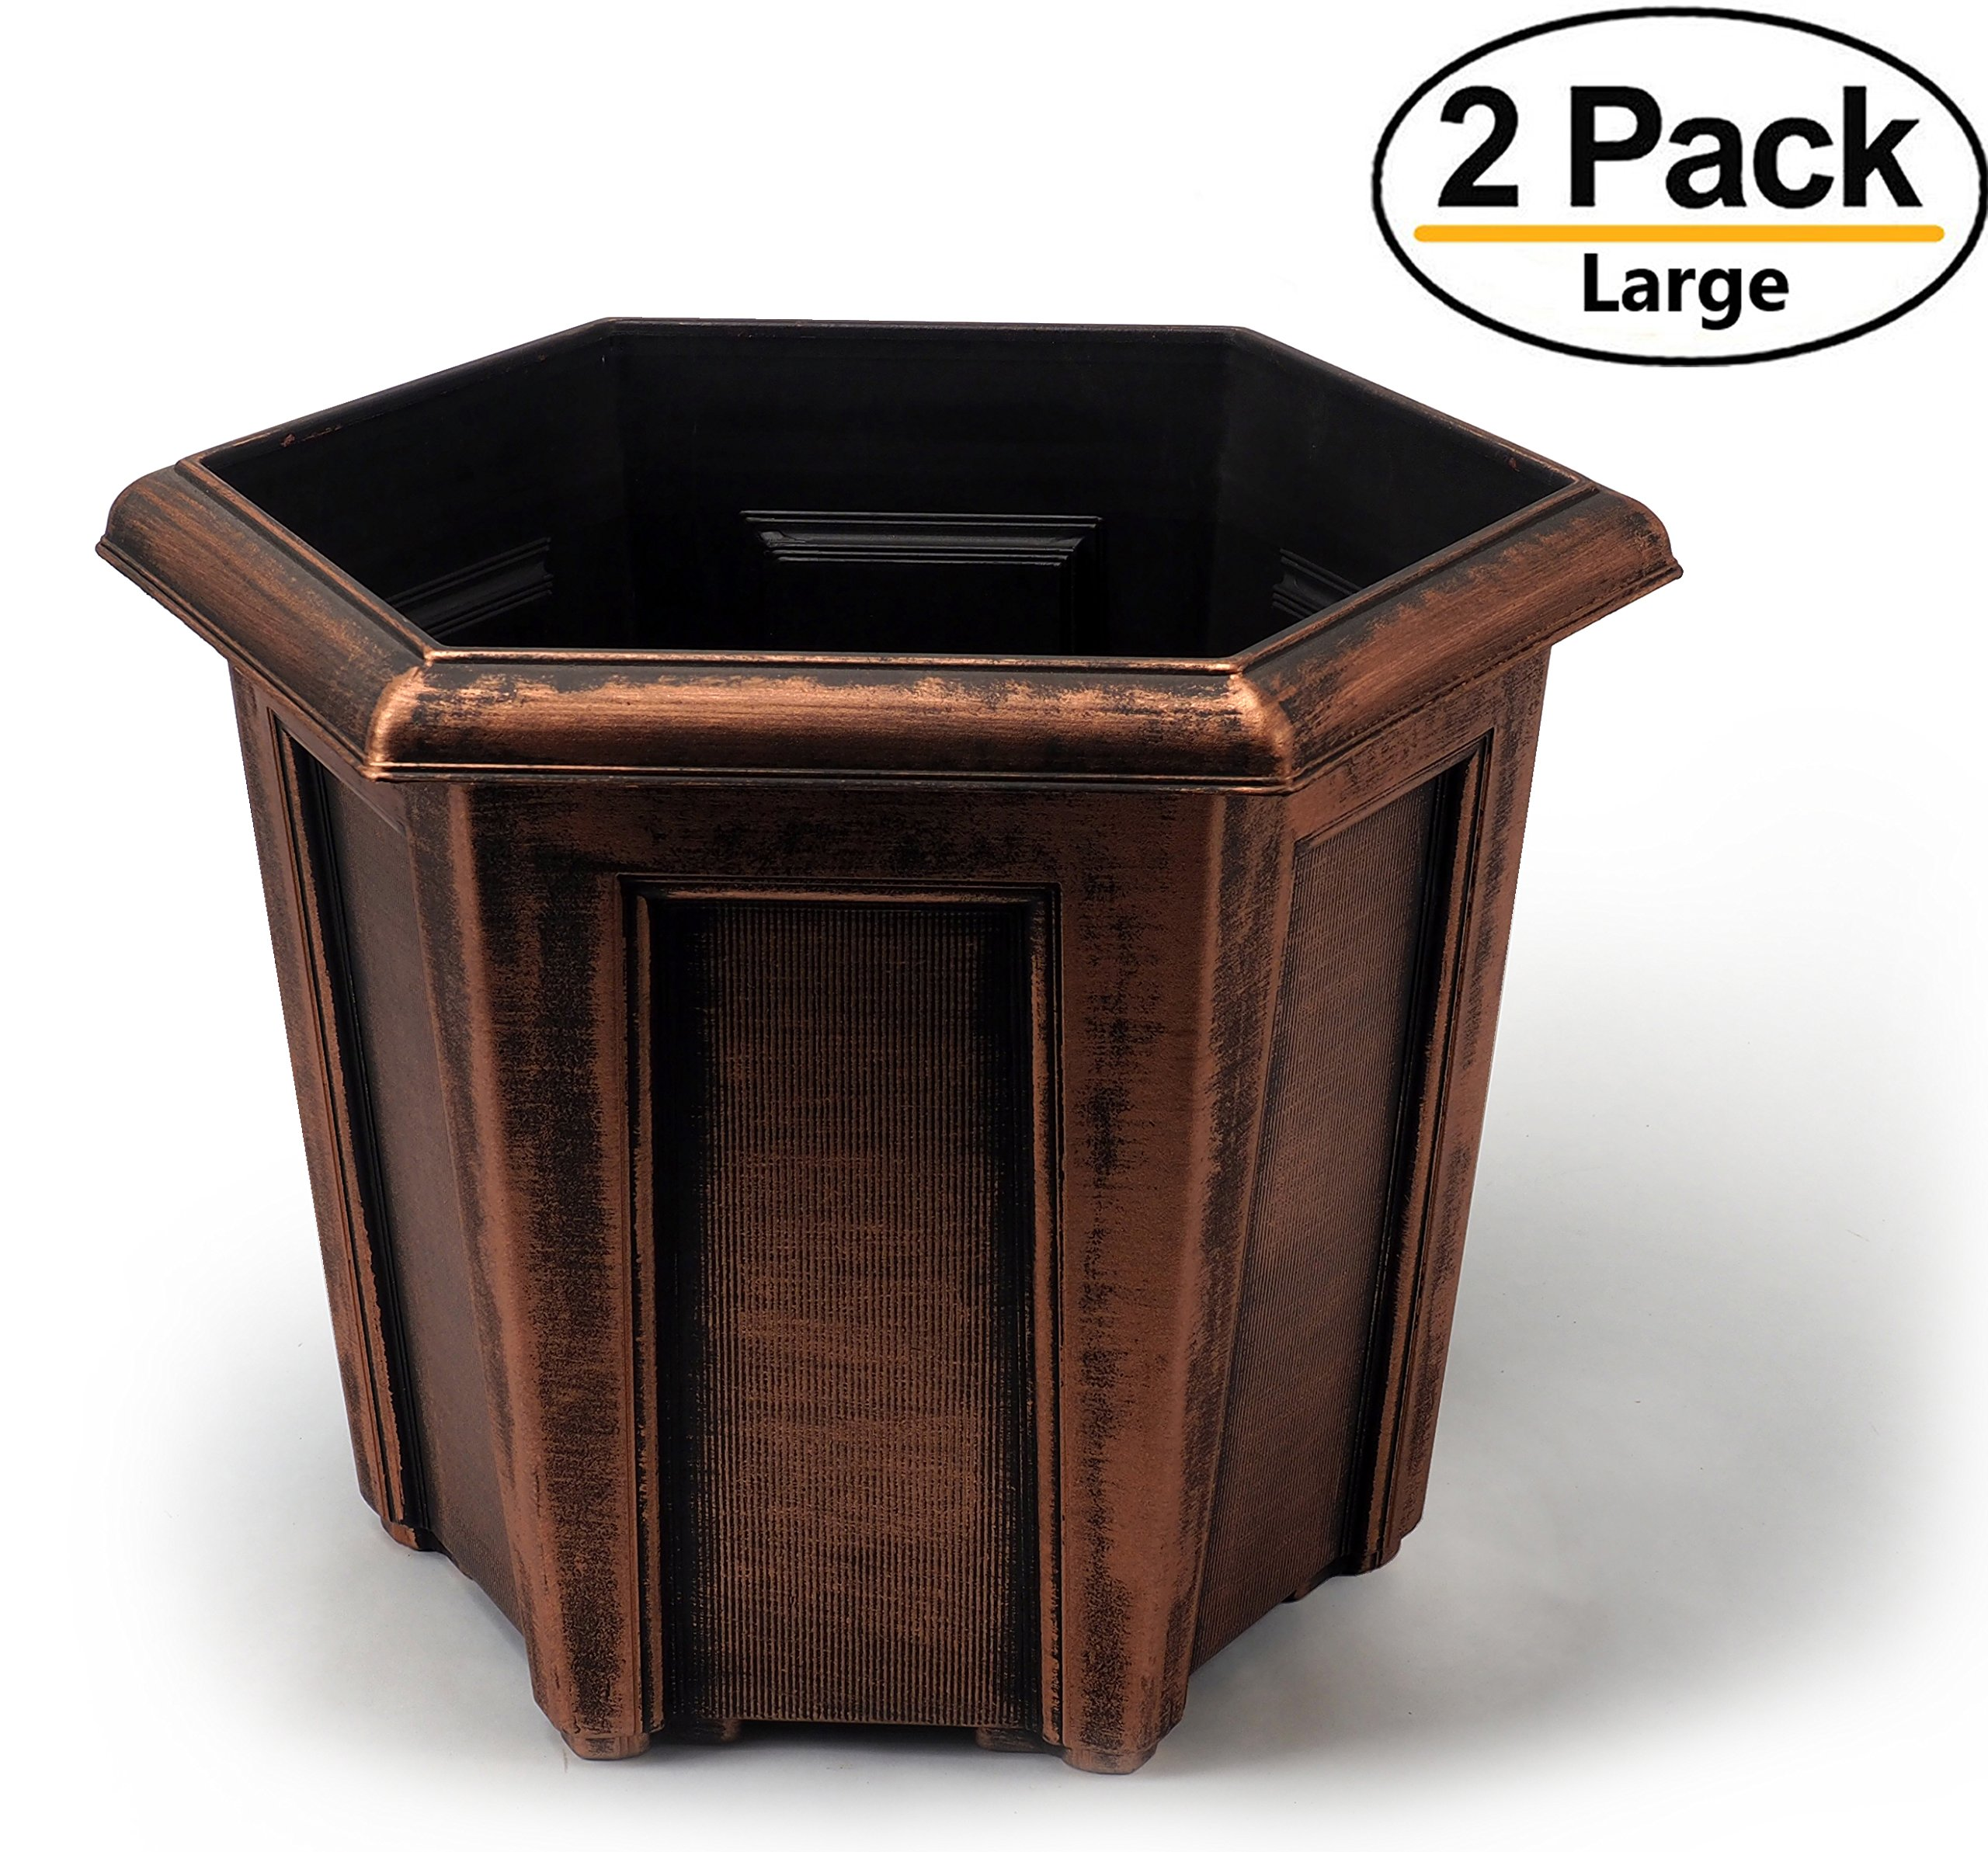 Extra Large 15X13 inches Hexagon Rustic Metal Look Plastic Planters/Flowerpot for Indoor, Outdoor, Garden Patio Office Ornaments Home Decor Use Long Lasting Reusable Light Weight (Copper-XL)